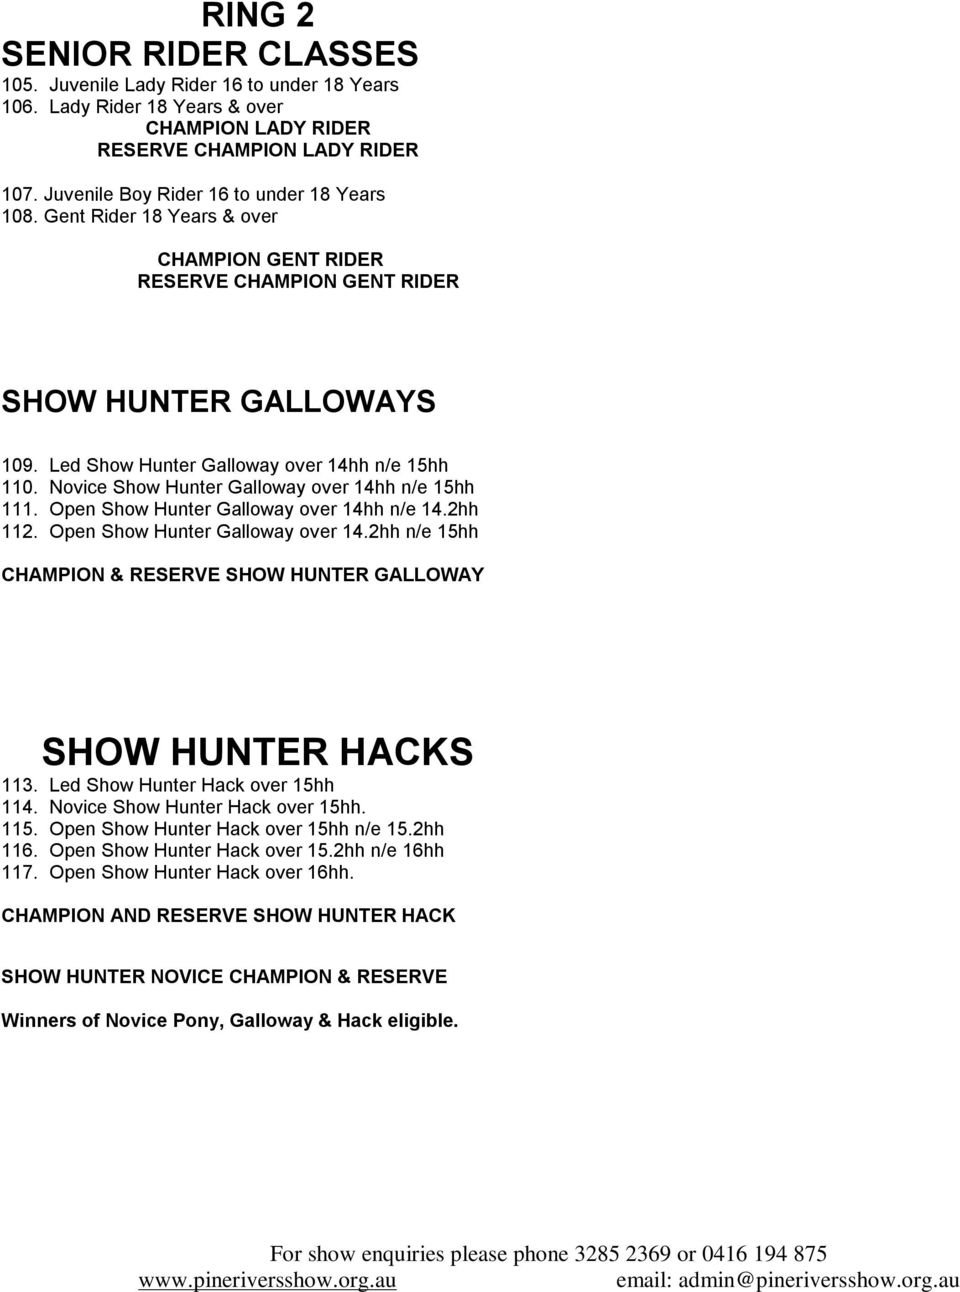 Novice Show Hunter Galloway over 14hh n/e 15hh 111. Open Show Hunter Galloway over 14hh n/e 14.2hh 112. Open Show Hunter Galloway over 14.2hh n/e 15hh CHAMPION & RESERVE SHOW HUNTER GALLOWAY SHOW HUNTER HACKS 113.